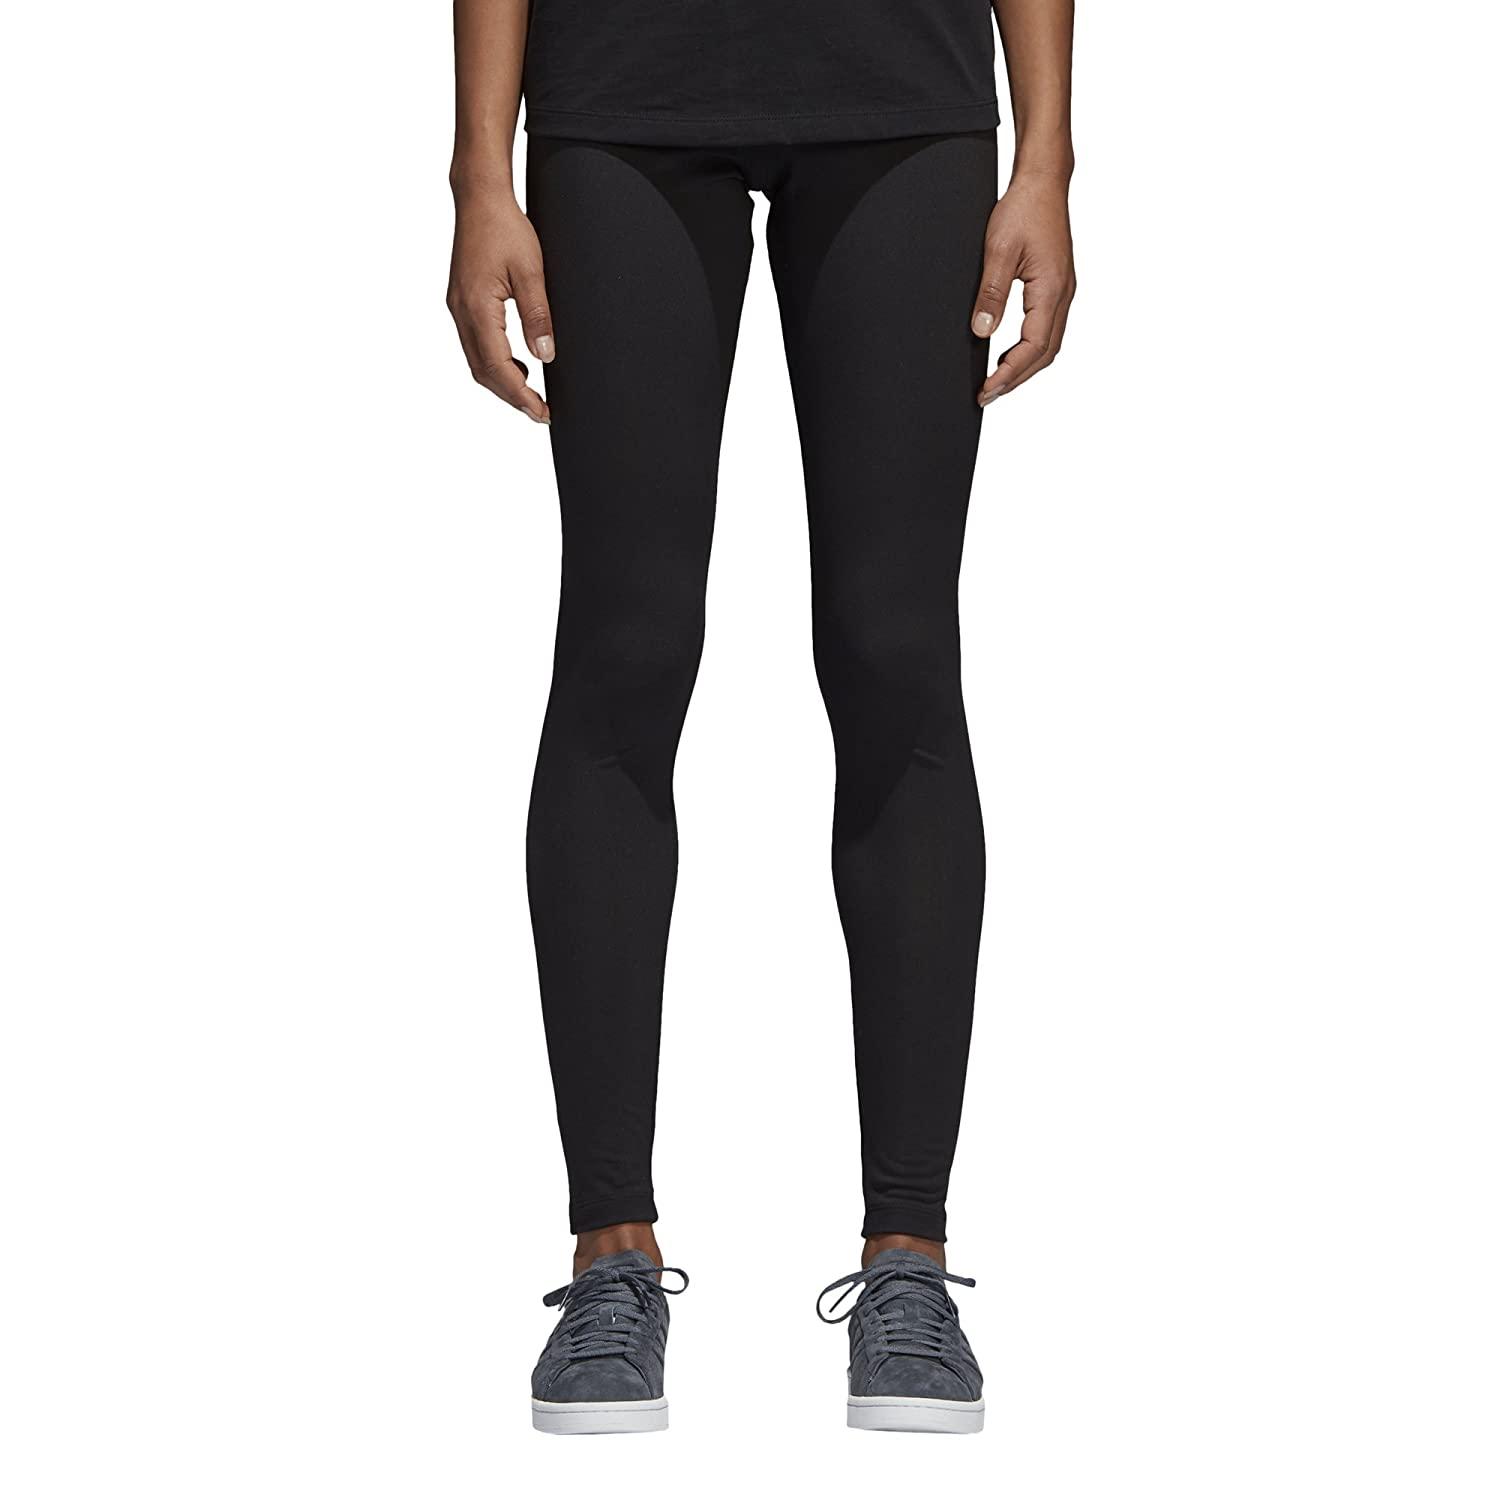 f0a19f67877 adidas Originals Women's Trefoil Leggings at Amazon Women's Clothing store: